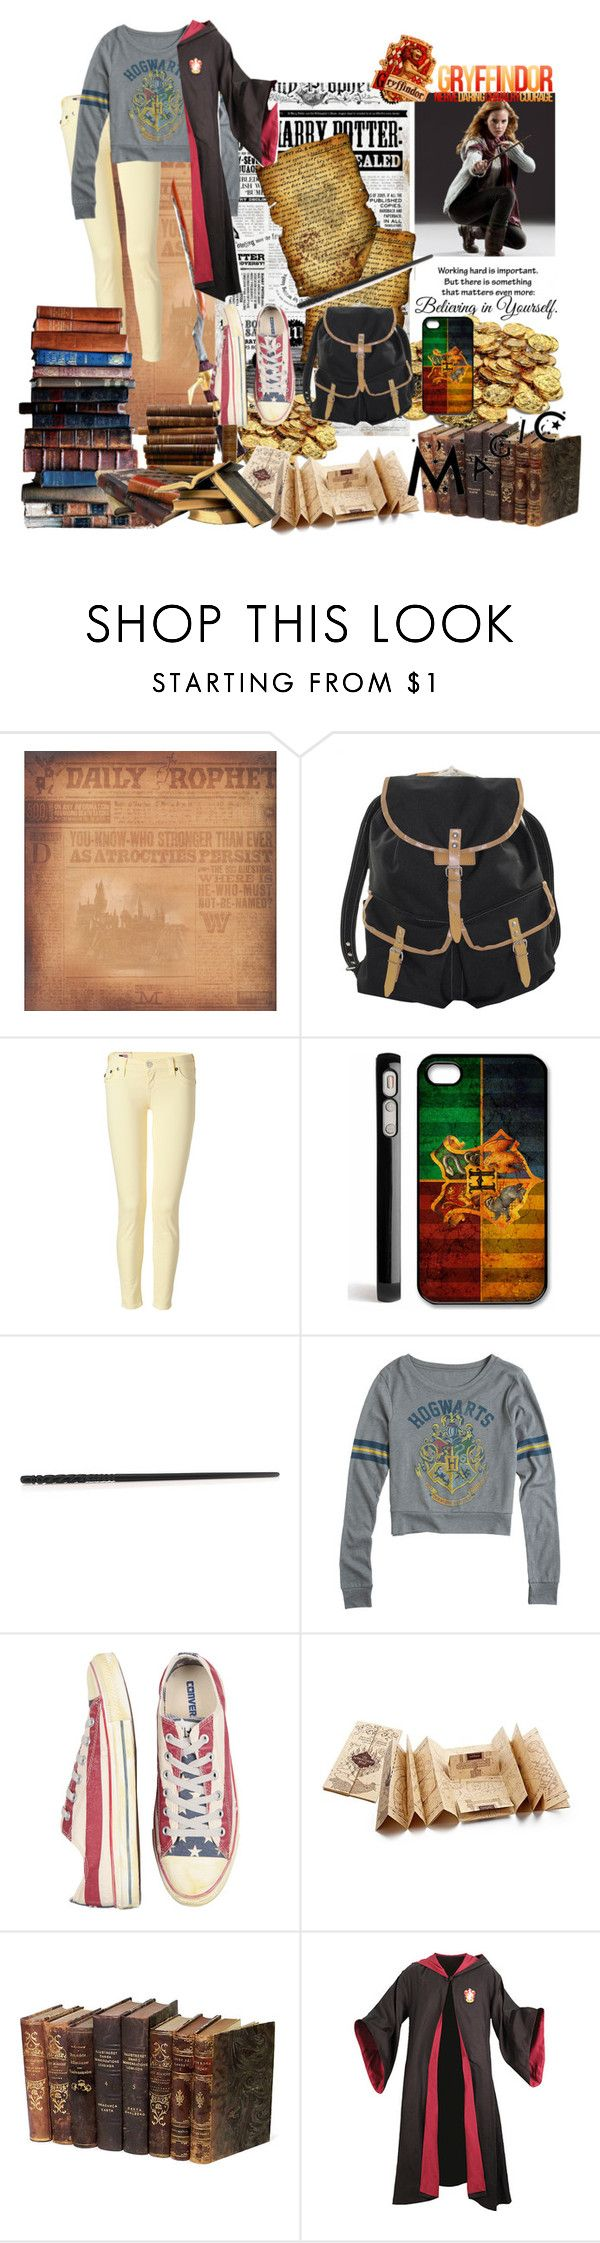 """""""Hogwarts style!!"""" by star-7 ❤ liked on Polyvore featuring Emma Watson, S.W.O.R.D., True Religion, Samsung and Converse"""